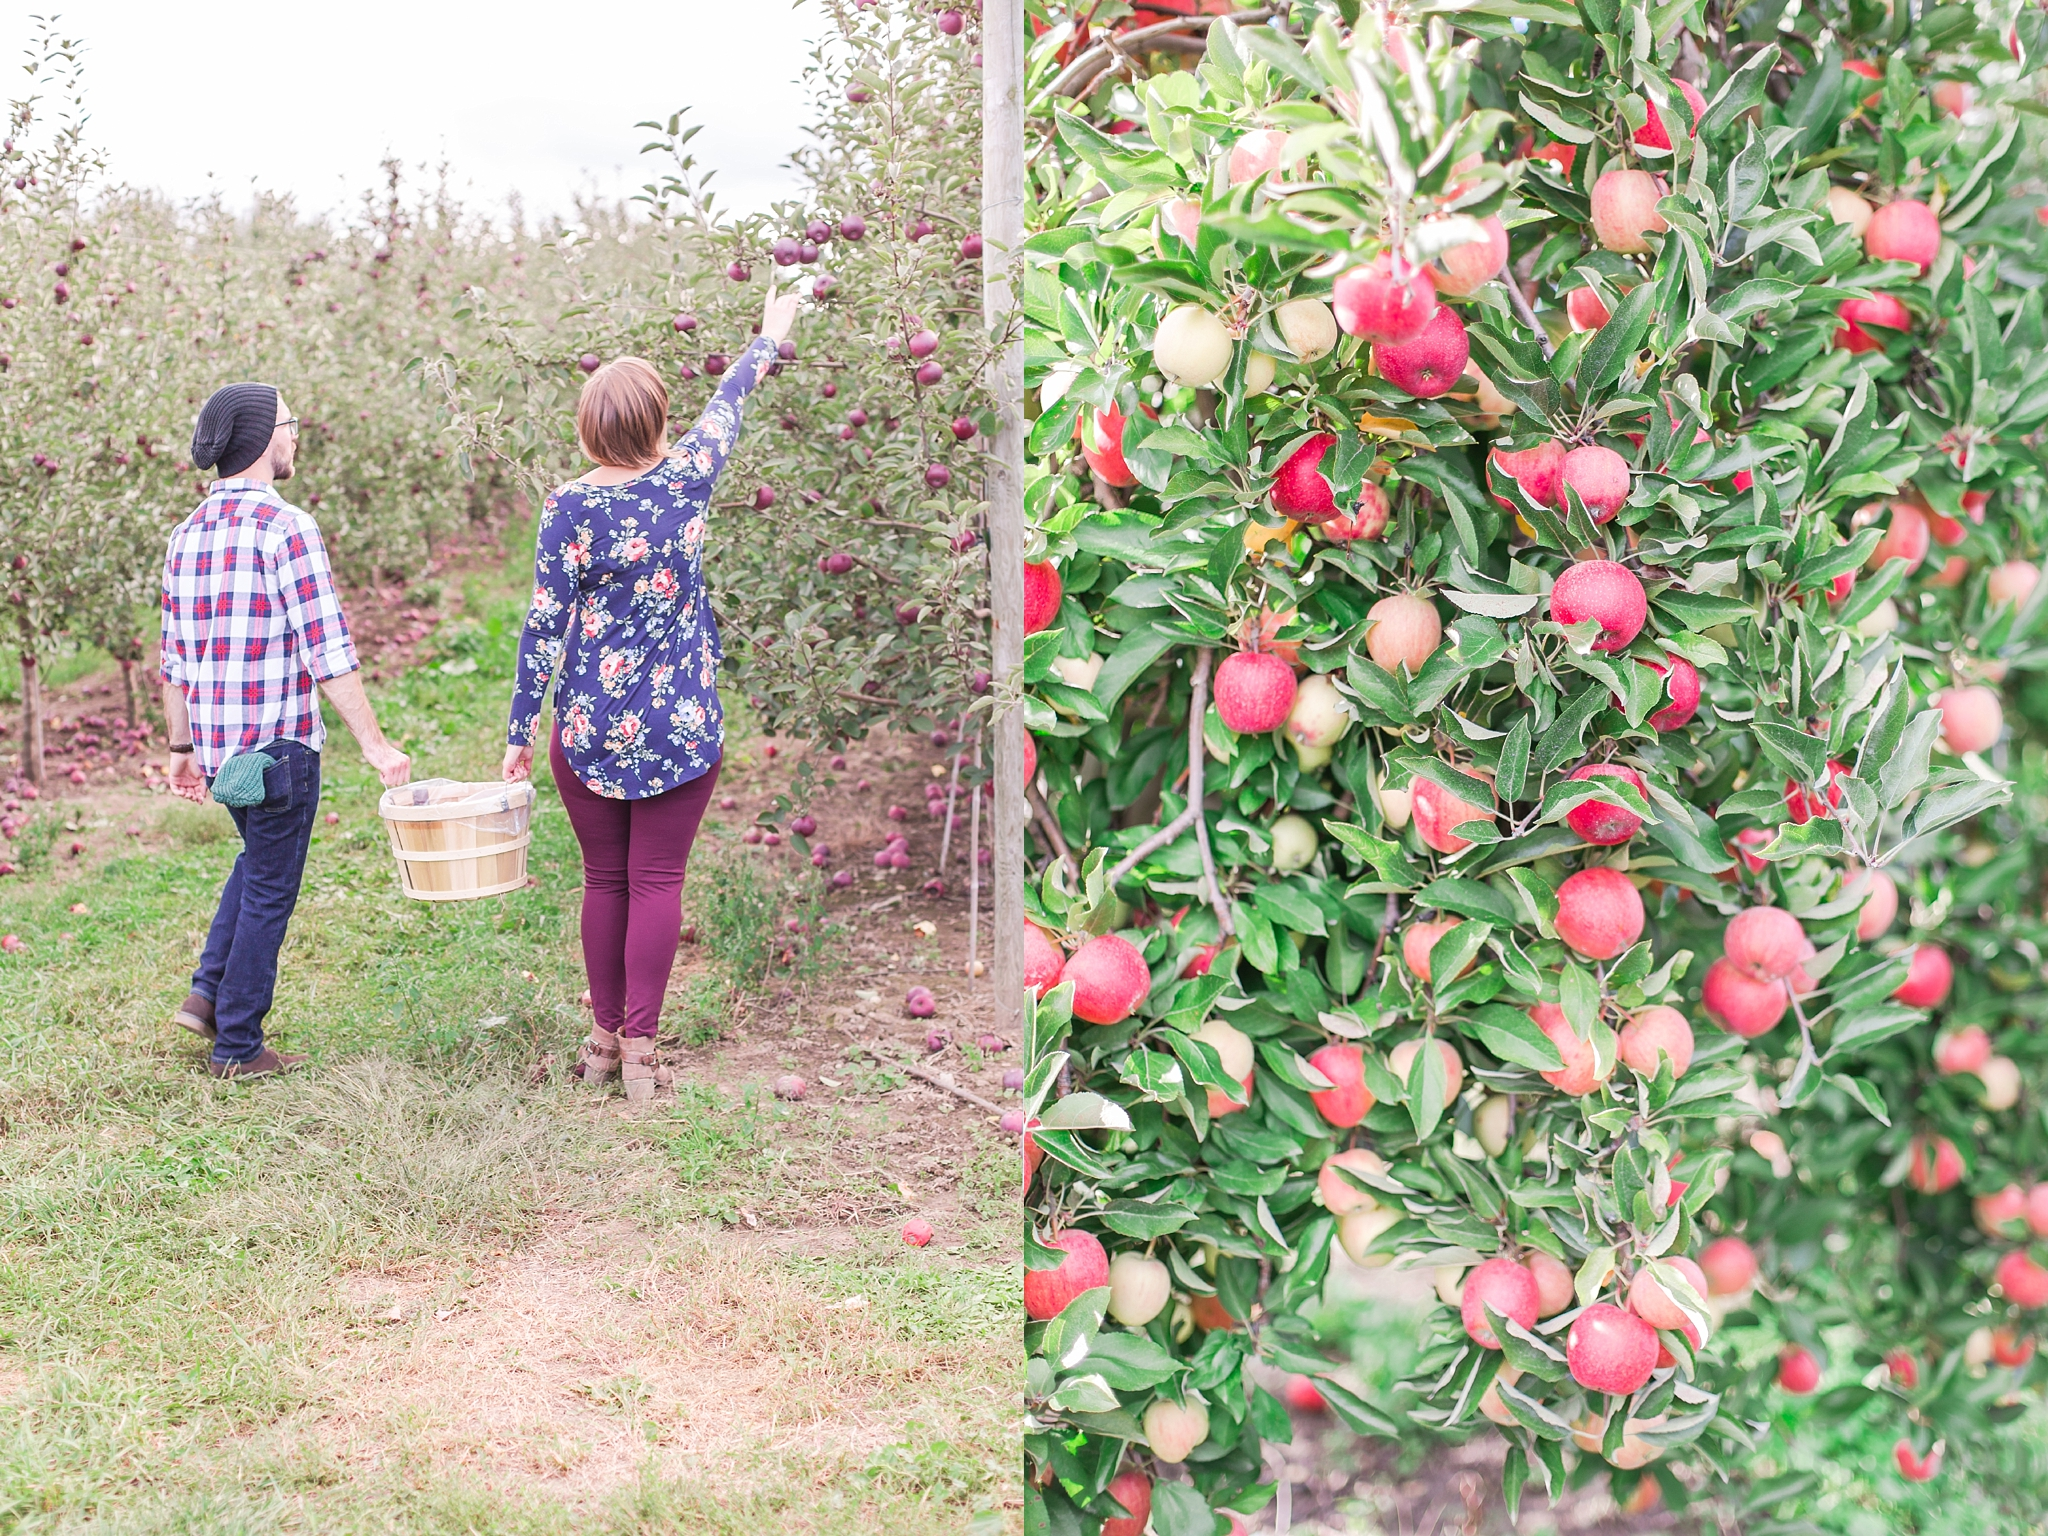 playful-fall-engagement-photos-at-hy's-cider-mill-ochard-in-bruce-township-michigan-by-courtney-carolyn-photography_0019.jpg